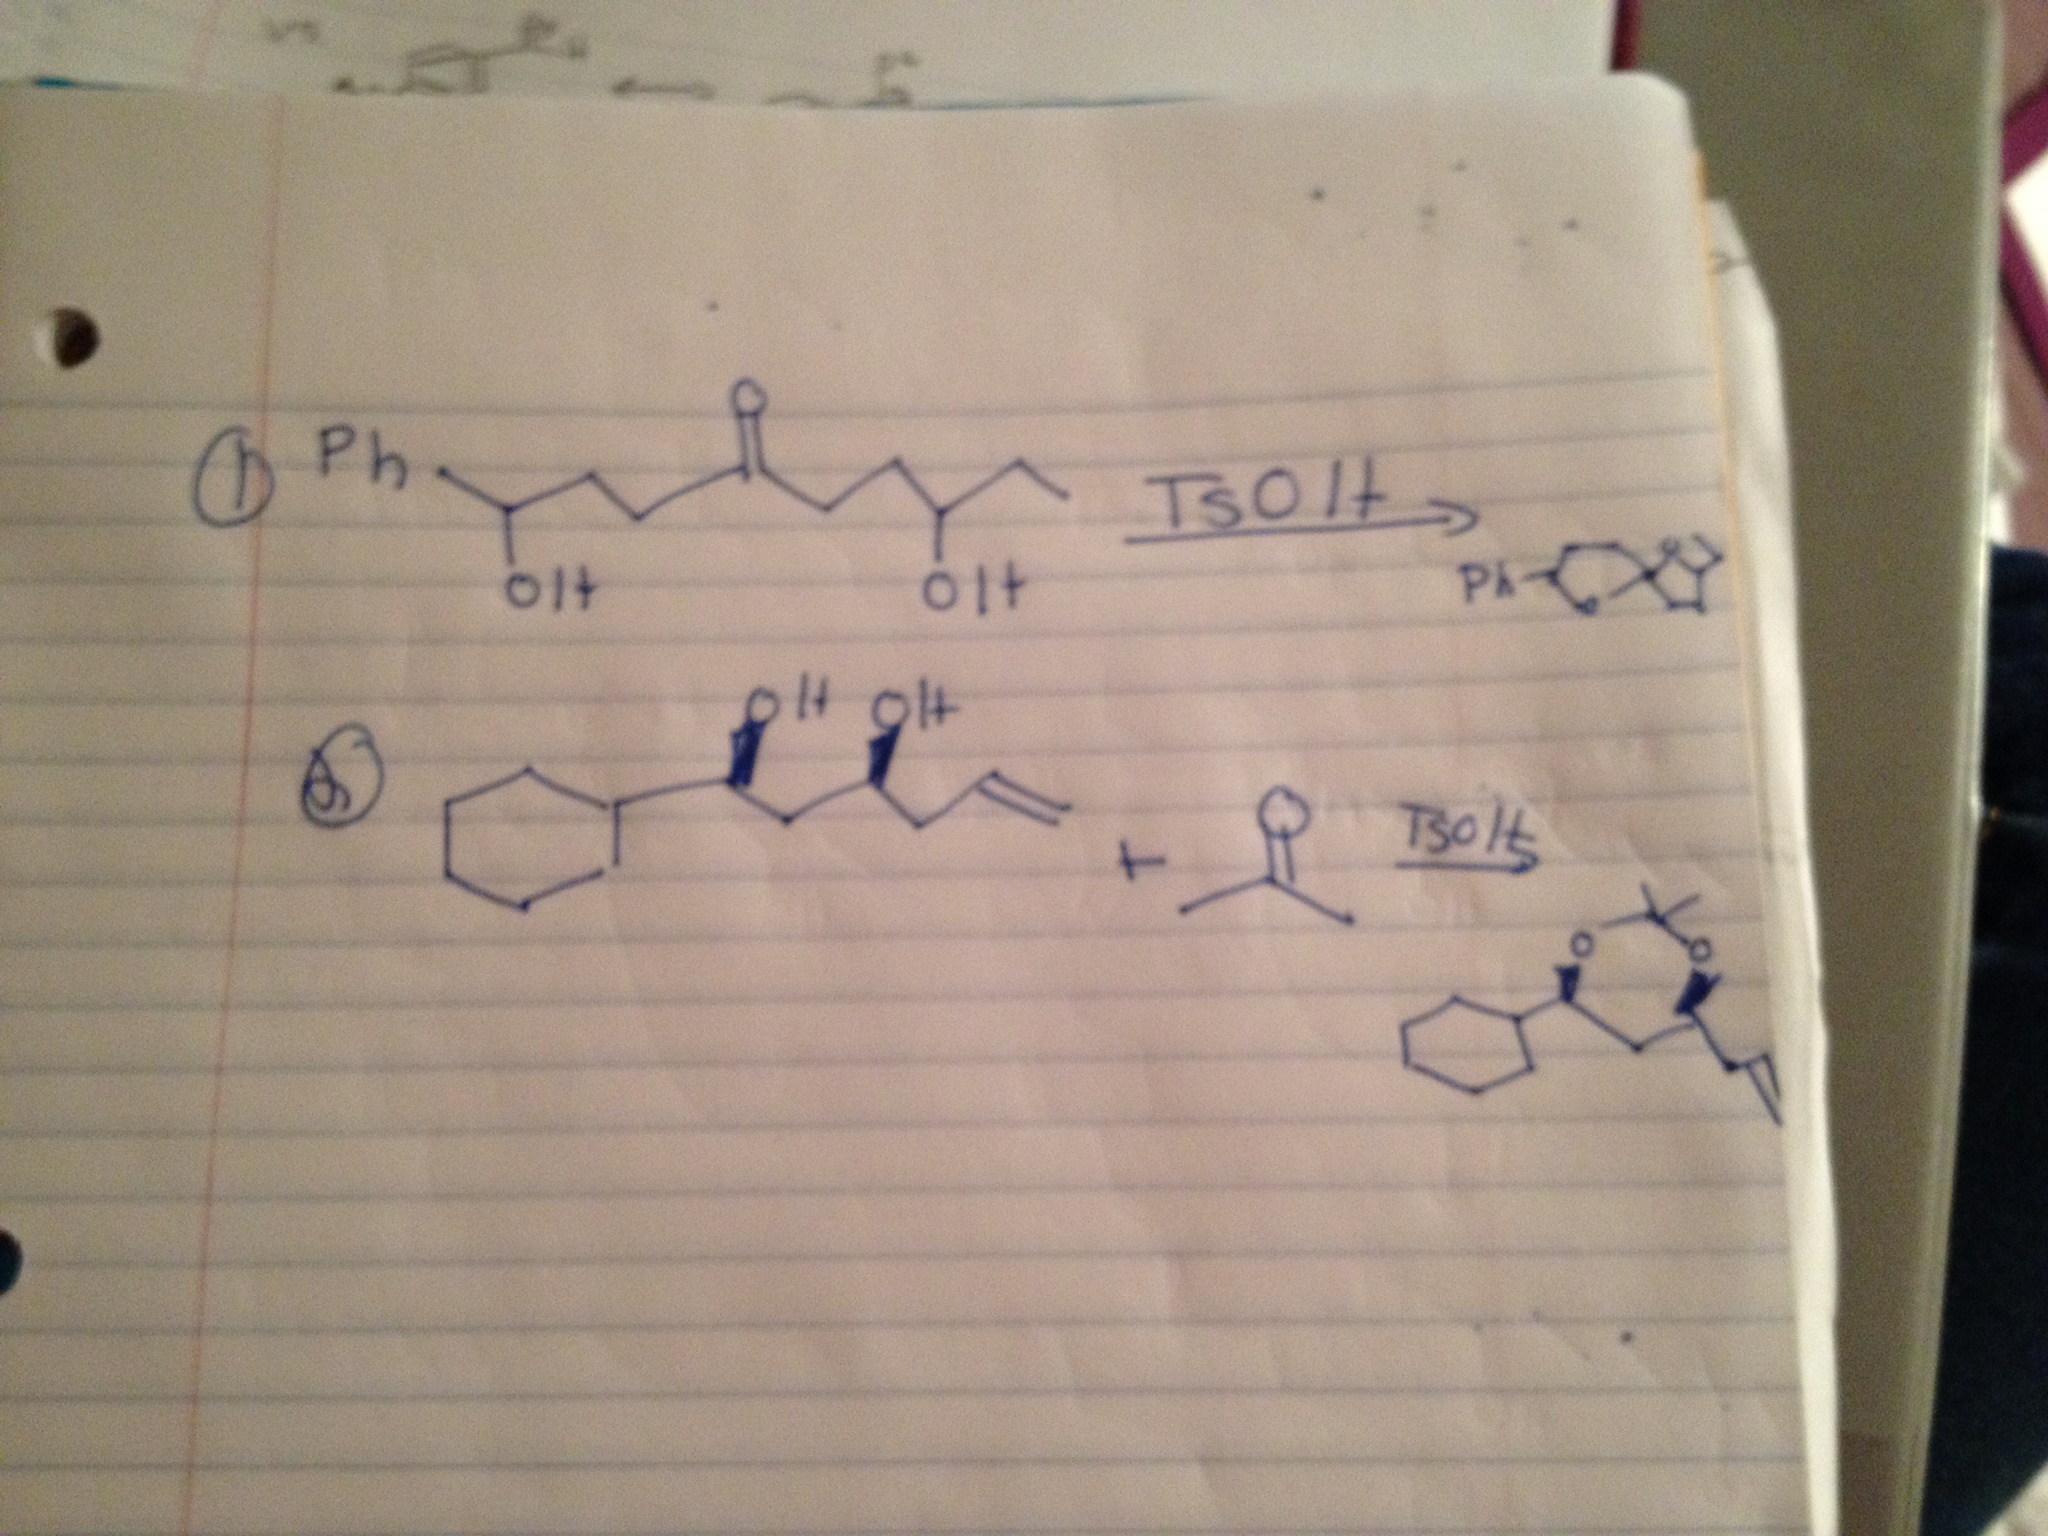 I'm very confused about these intramolecular react